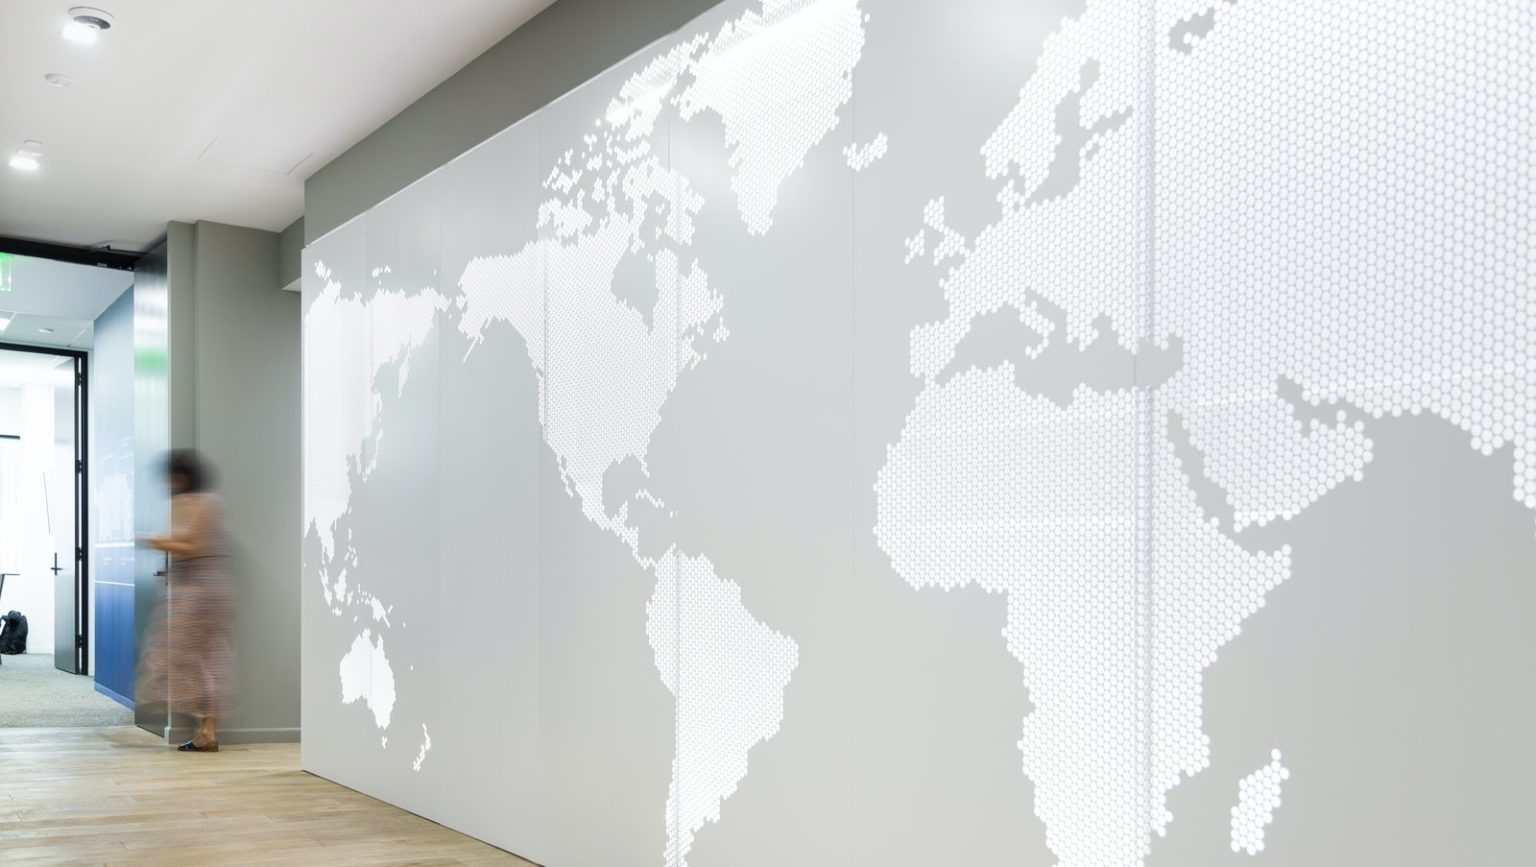 Lineage Logistics by Gensler: Using ImageWall, Gensler designed a feature wall for Lineage Logistics. This gleaming lobby wall is made of painted aluminum, with depth allowance for backlighting. A clean illustration of the world is carved out on the surface of the wall, signifying the international reach of the company.